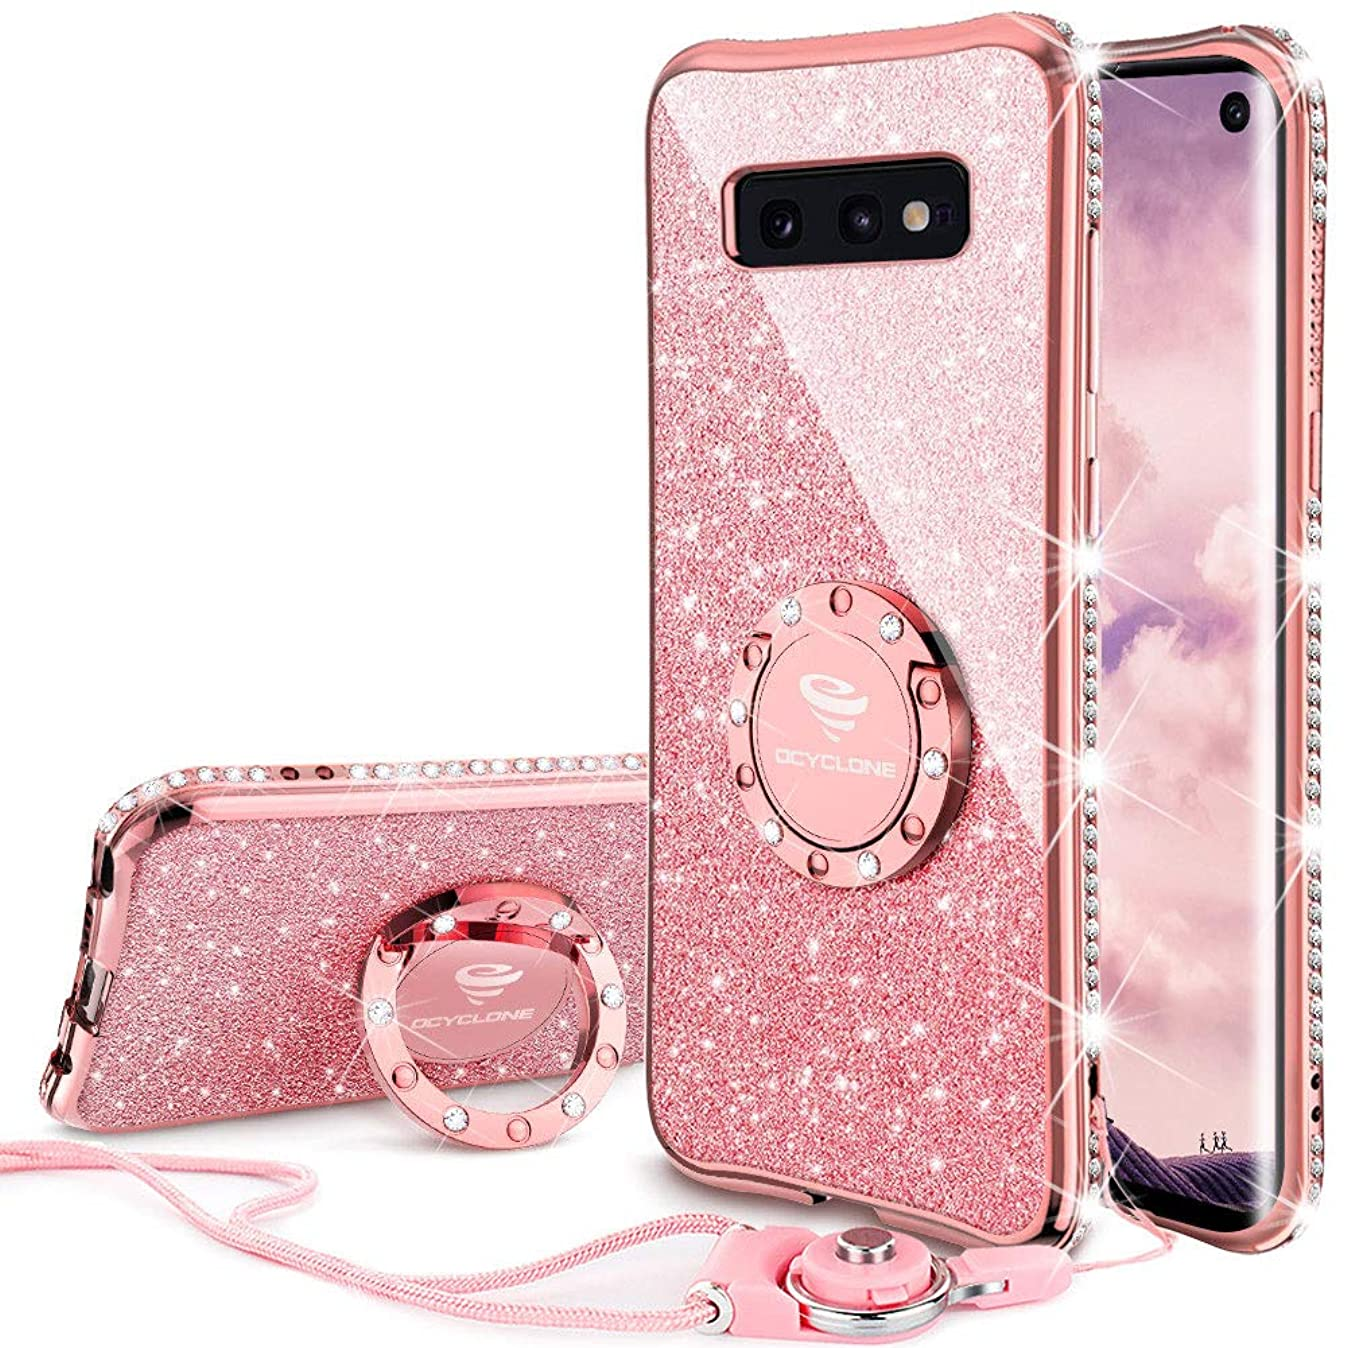 OCYCLONE Galaxy S10e Case, Glitter Cute Phone Case for Women Girls with Kickstand, Bling Diamond Rhinestone Bumper Ring Stand Compatible with Galaxy S10e Case for Girl Women - Rose Gold [Pink] t2954719850